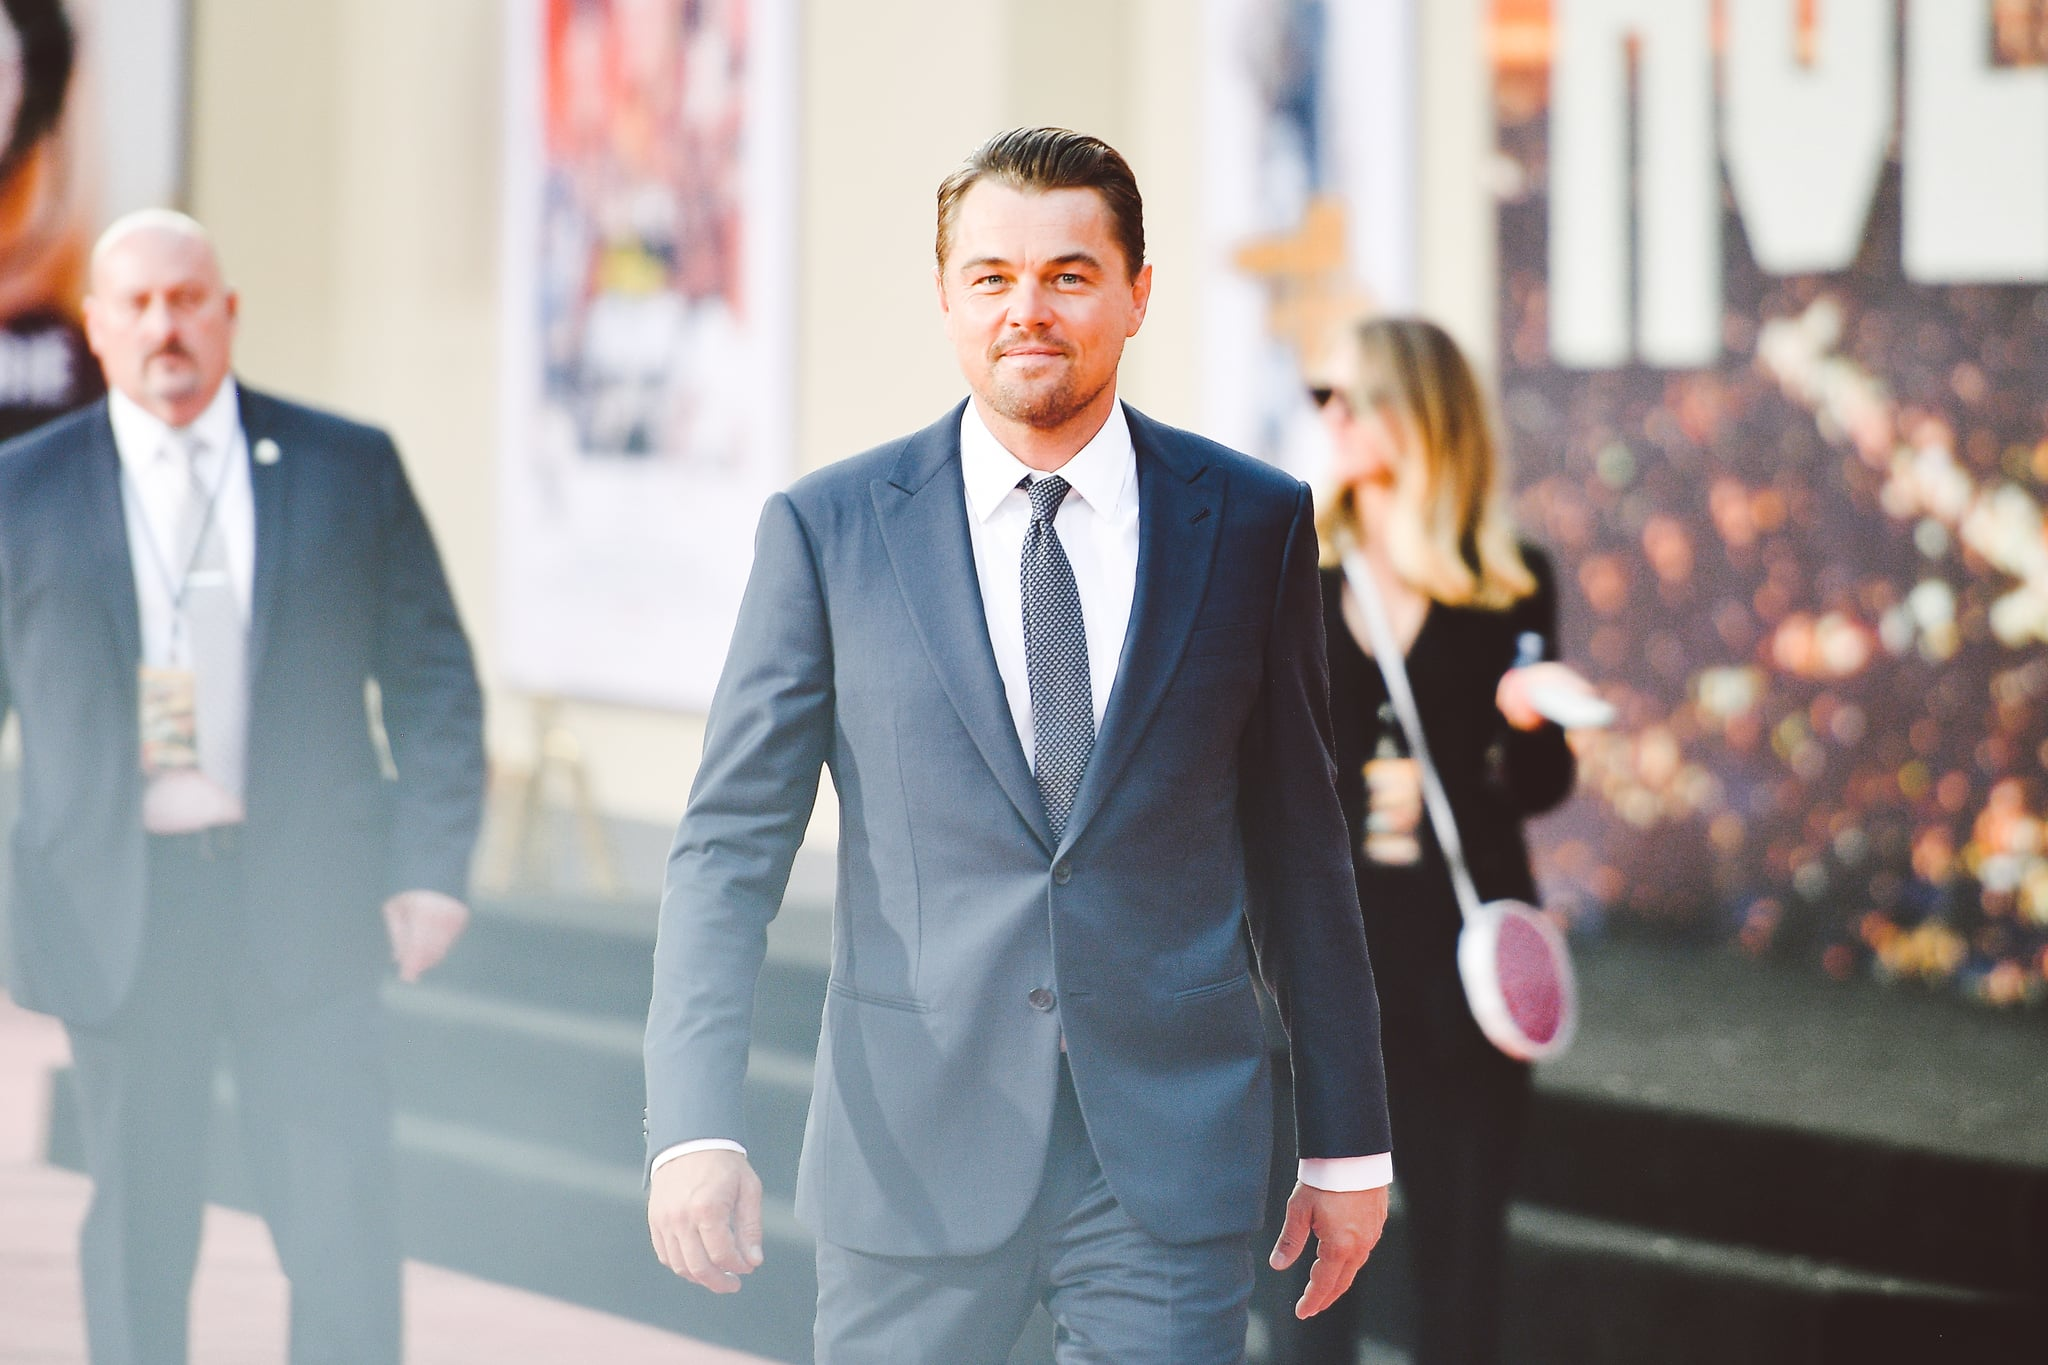 HOLLYWOOD, CALIFORNIA - JULY 22:  (EDITORS NOTE: Image has been edited using digital filters) Leonardo DiCaprio attends Sony Pictures'